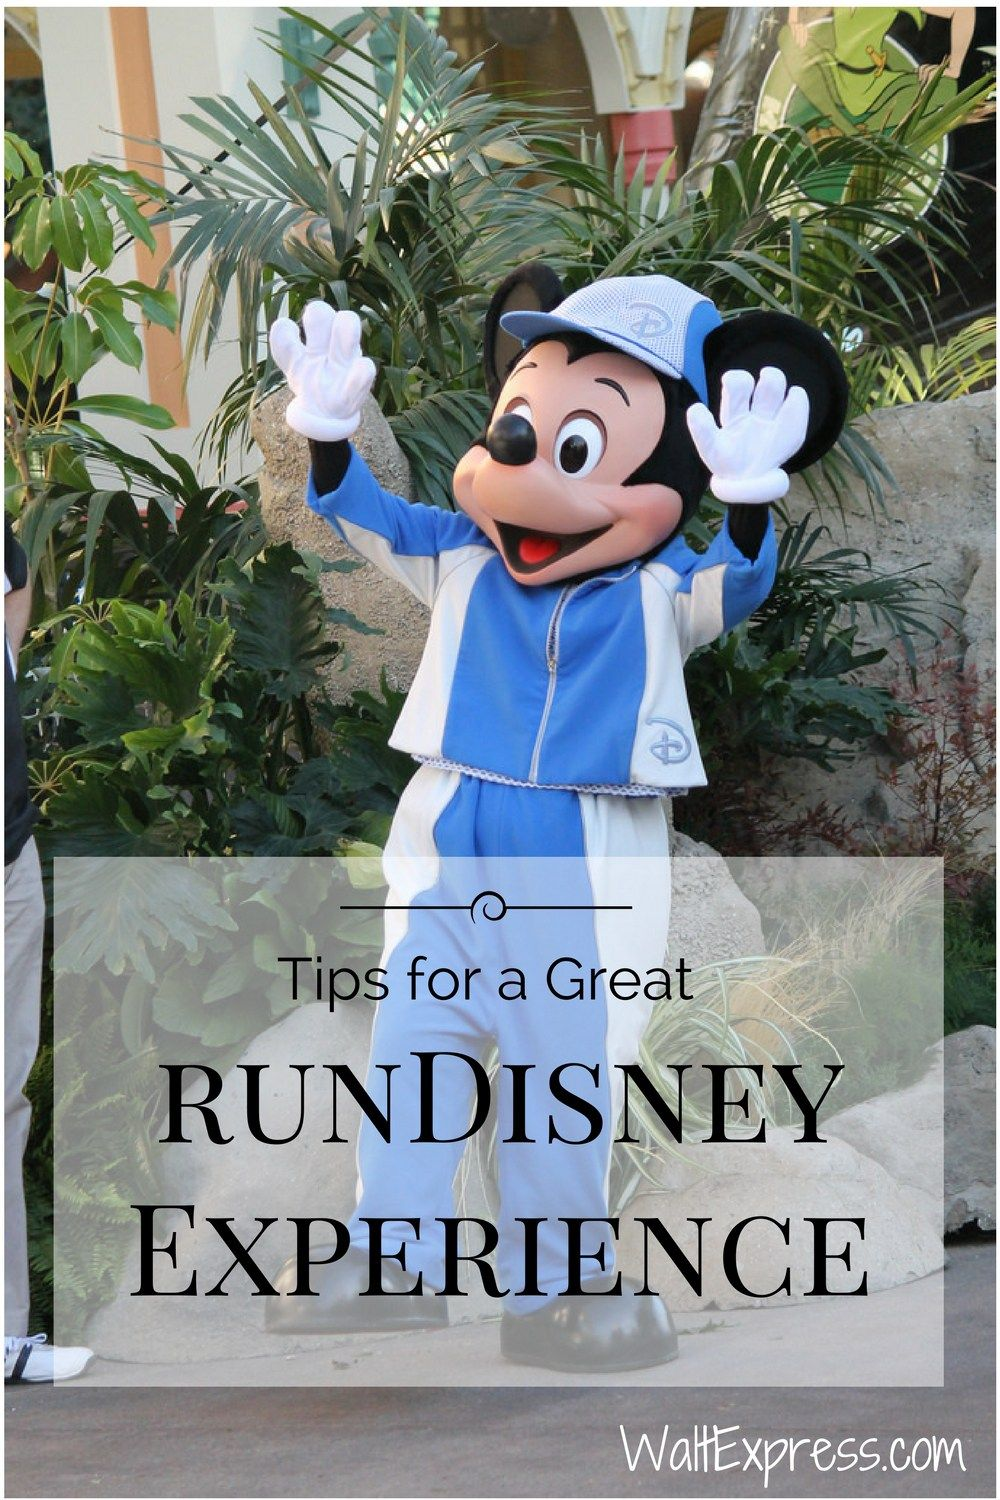 Tips For A Great RunDisney Experience In Disney World